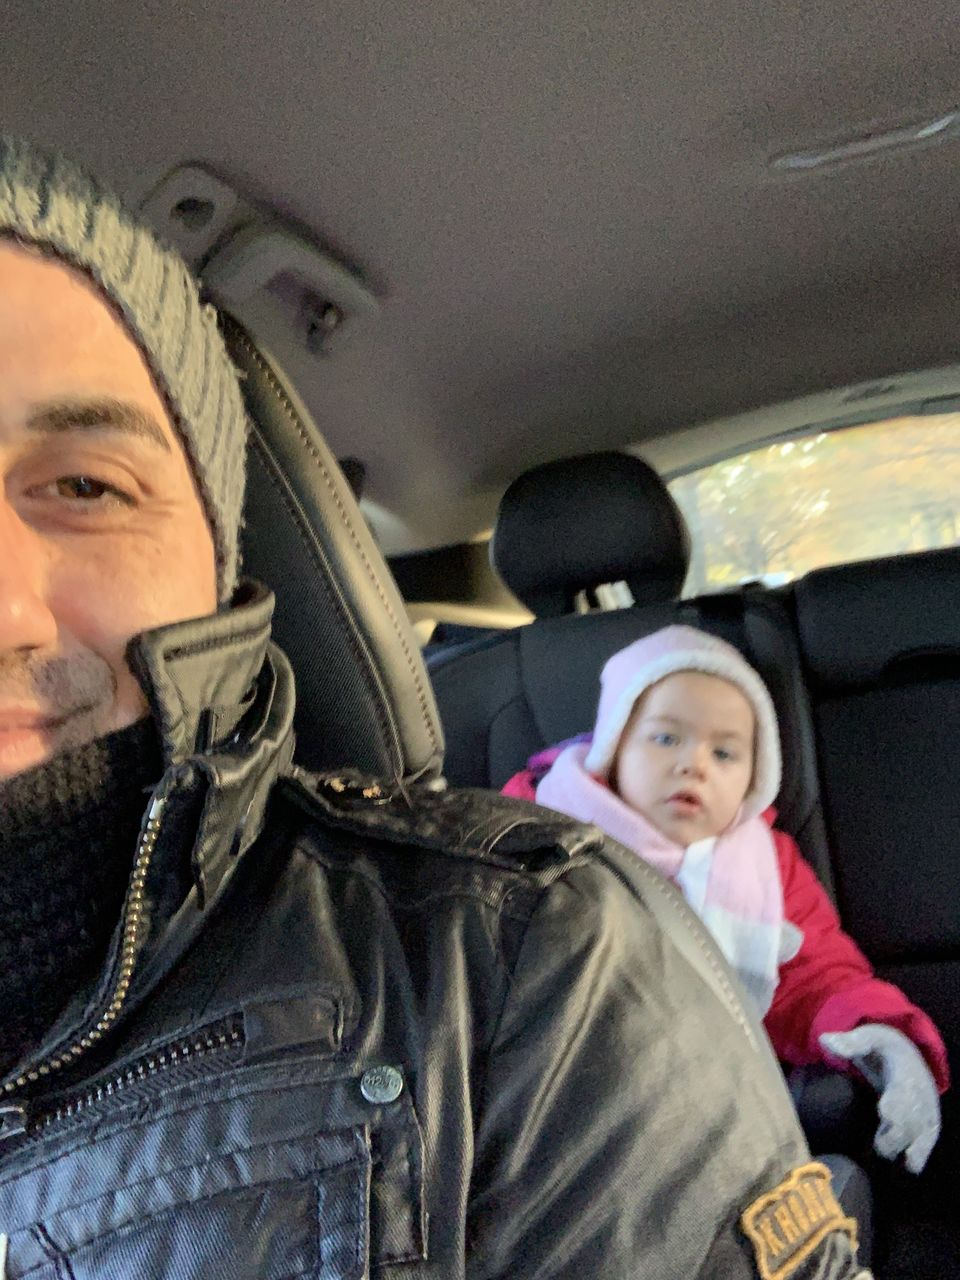 child, childhood, portrait, vehicle interior, mode of transportation, transportation, clothing, two people, males, boys, offspring, family, men, car, emotion, looking at camera, motor vehicle, people, warm clothing, son, daughter, hood - clothing